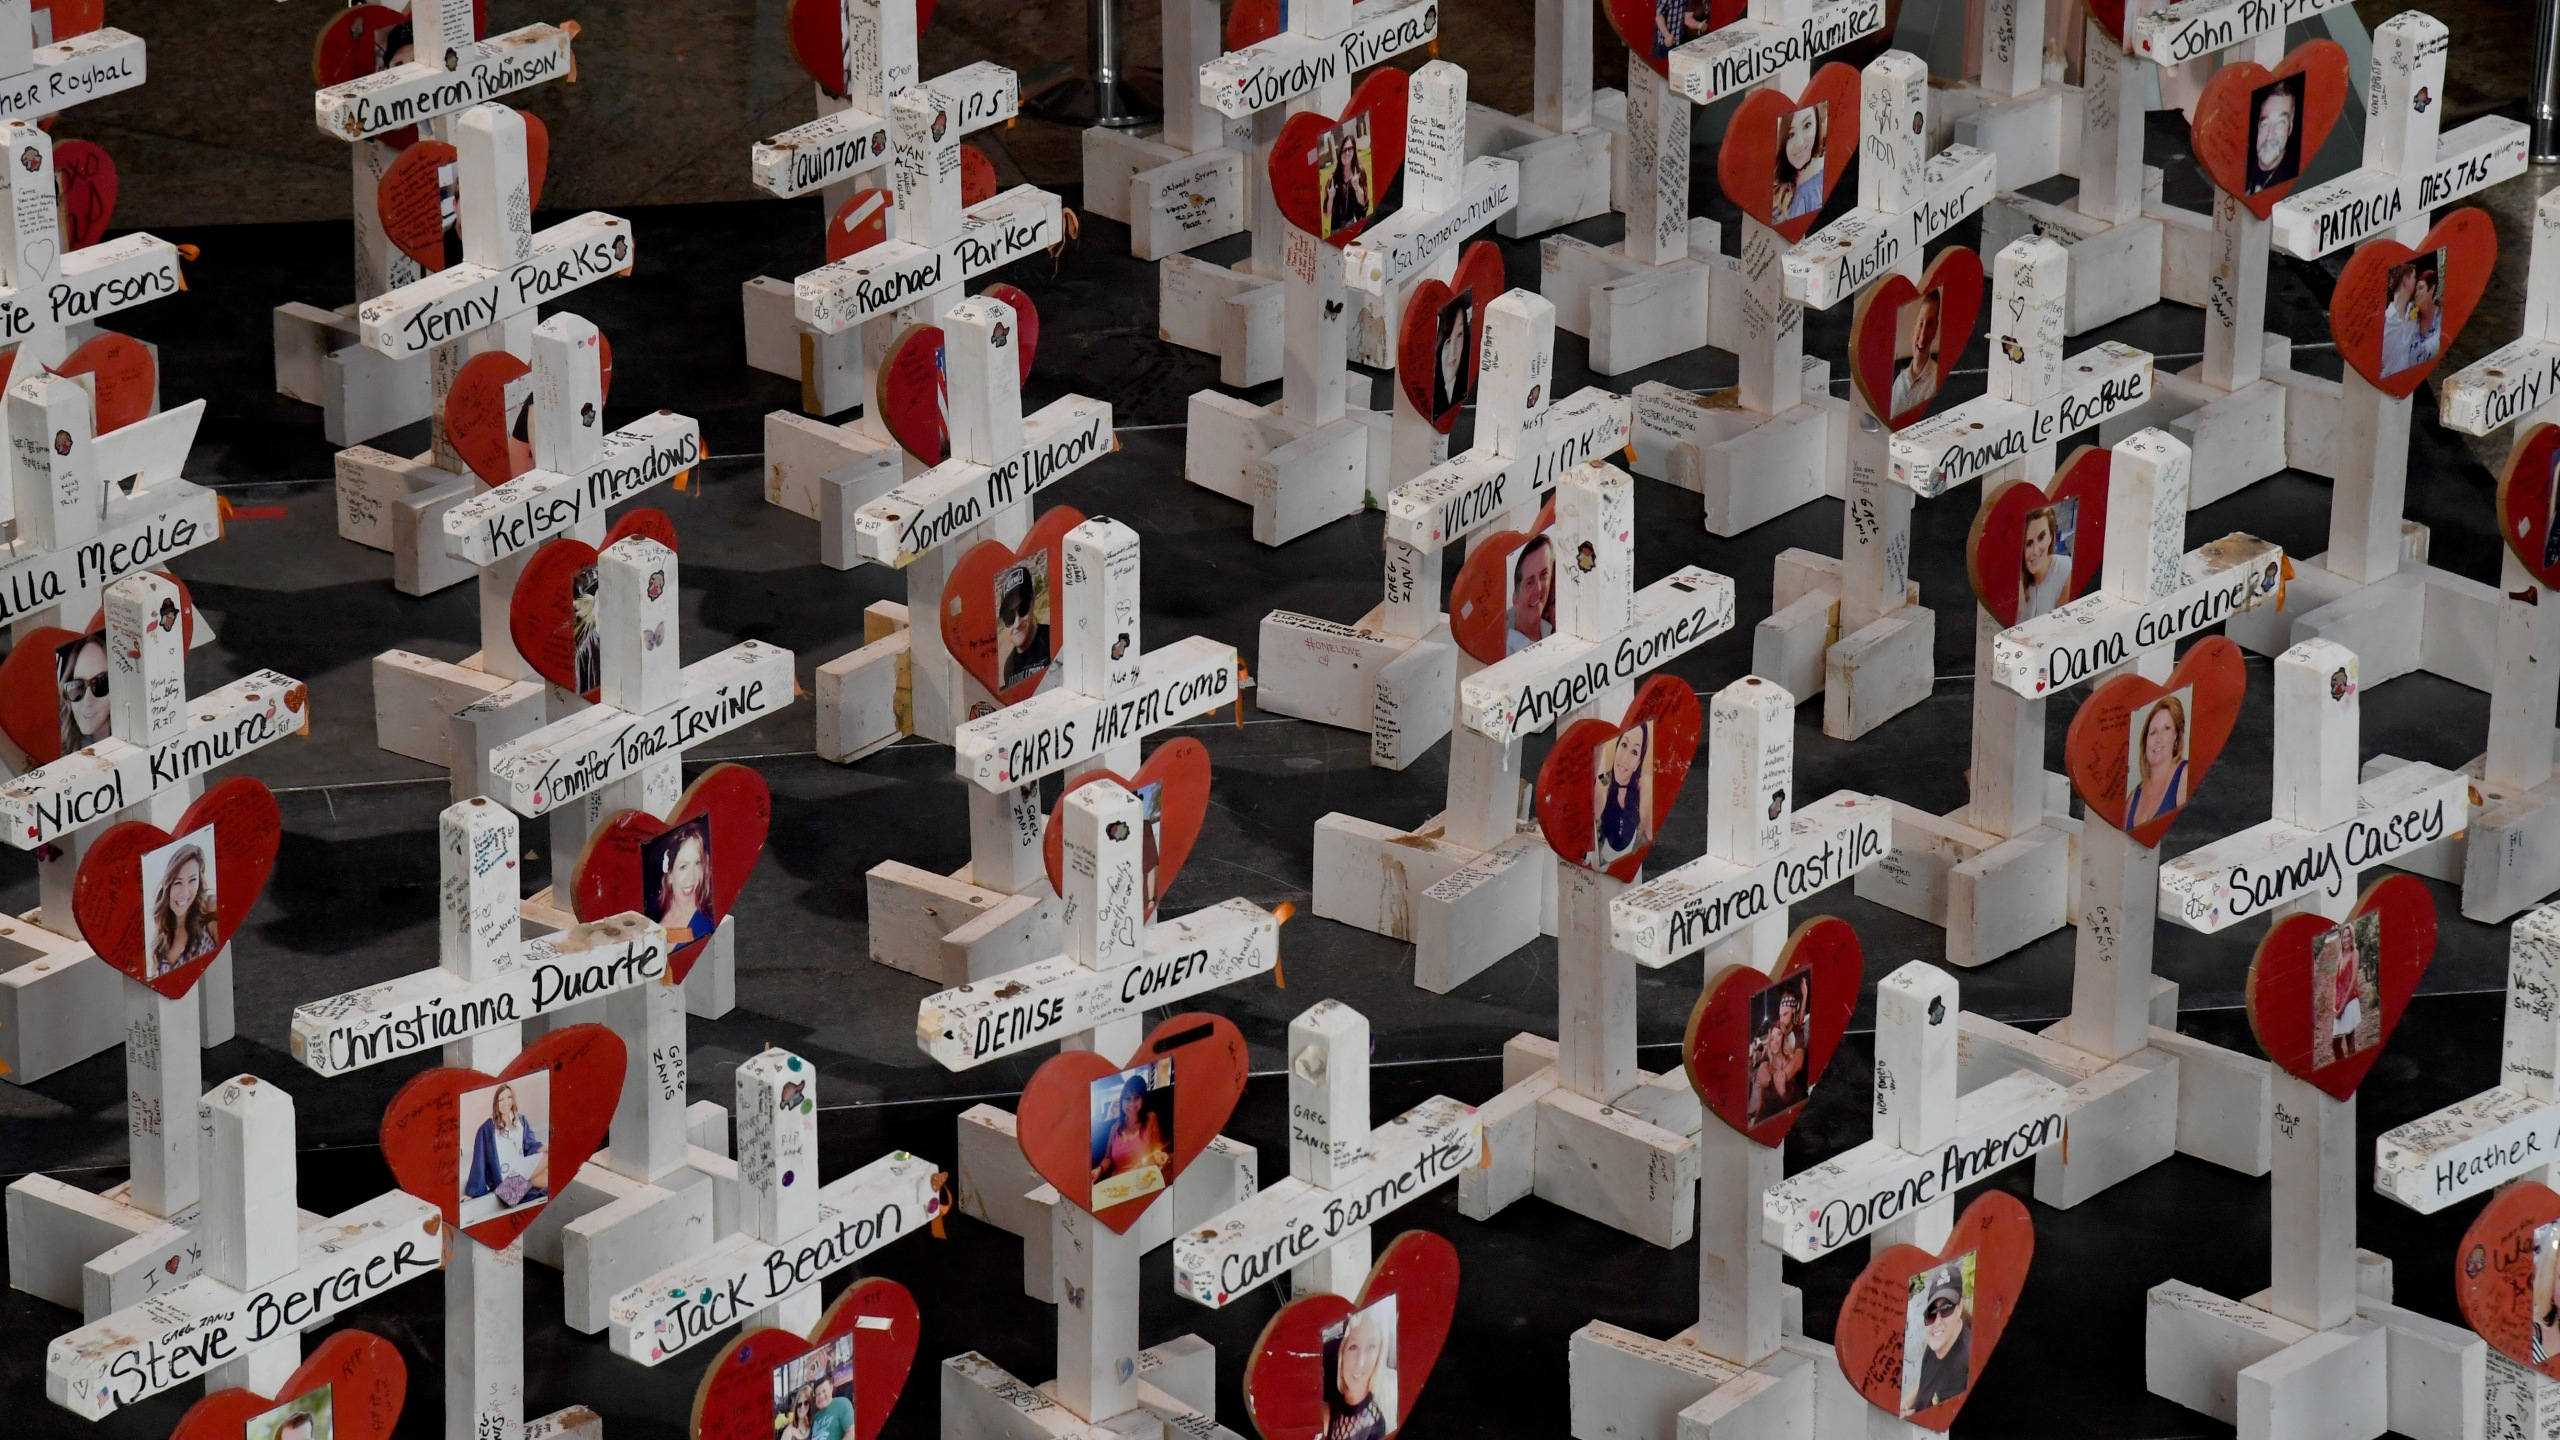 """Some of the original 58 wooden crosses that were set up as part of a memorial at the Welcome to Fabulous Las Vegas sign after last year's massacre are displayed at """"The Las Vegas Portraits Project, 1 October Memorial Exhibit"""" at the Clark County Government Center in Las Vegas on Oct. 1, 2018. (Credit: Ethan Miller / Getty Images)"""